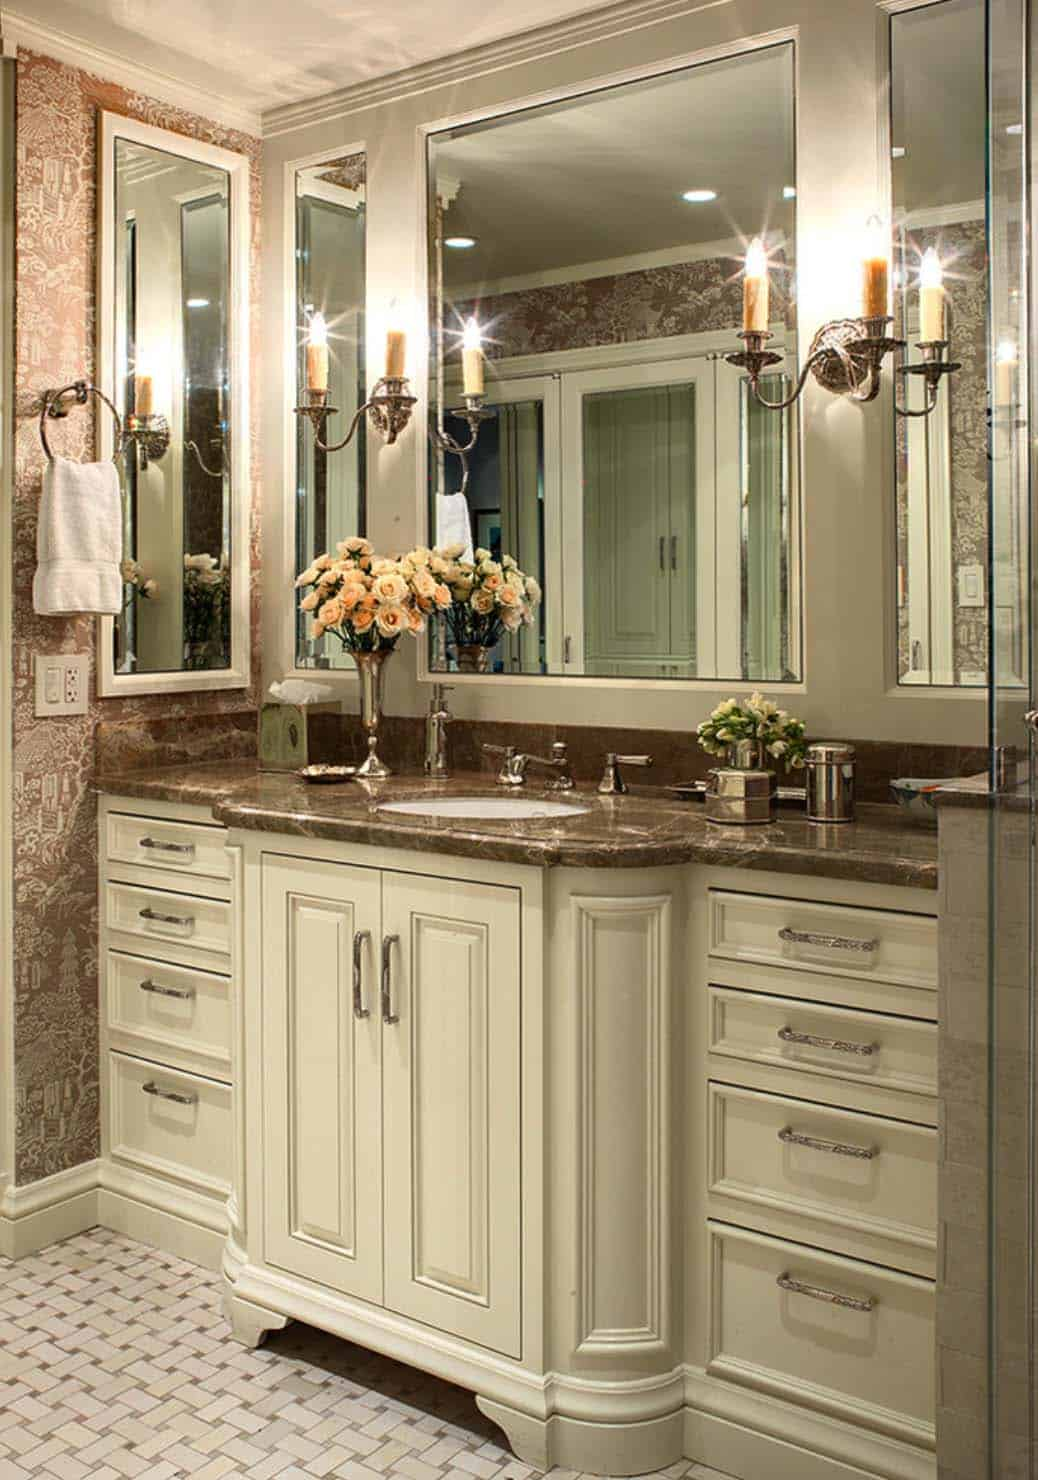 Traditional Bathroom Design Ideas-47-1 Kindesign